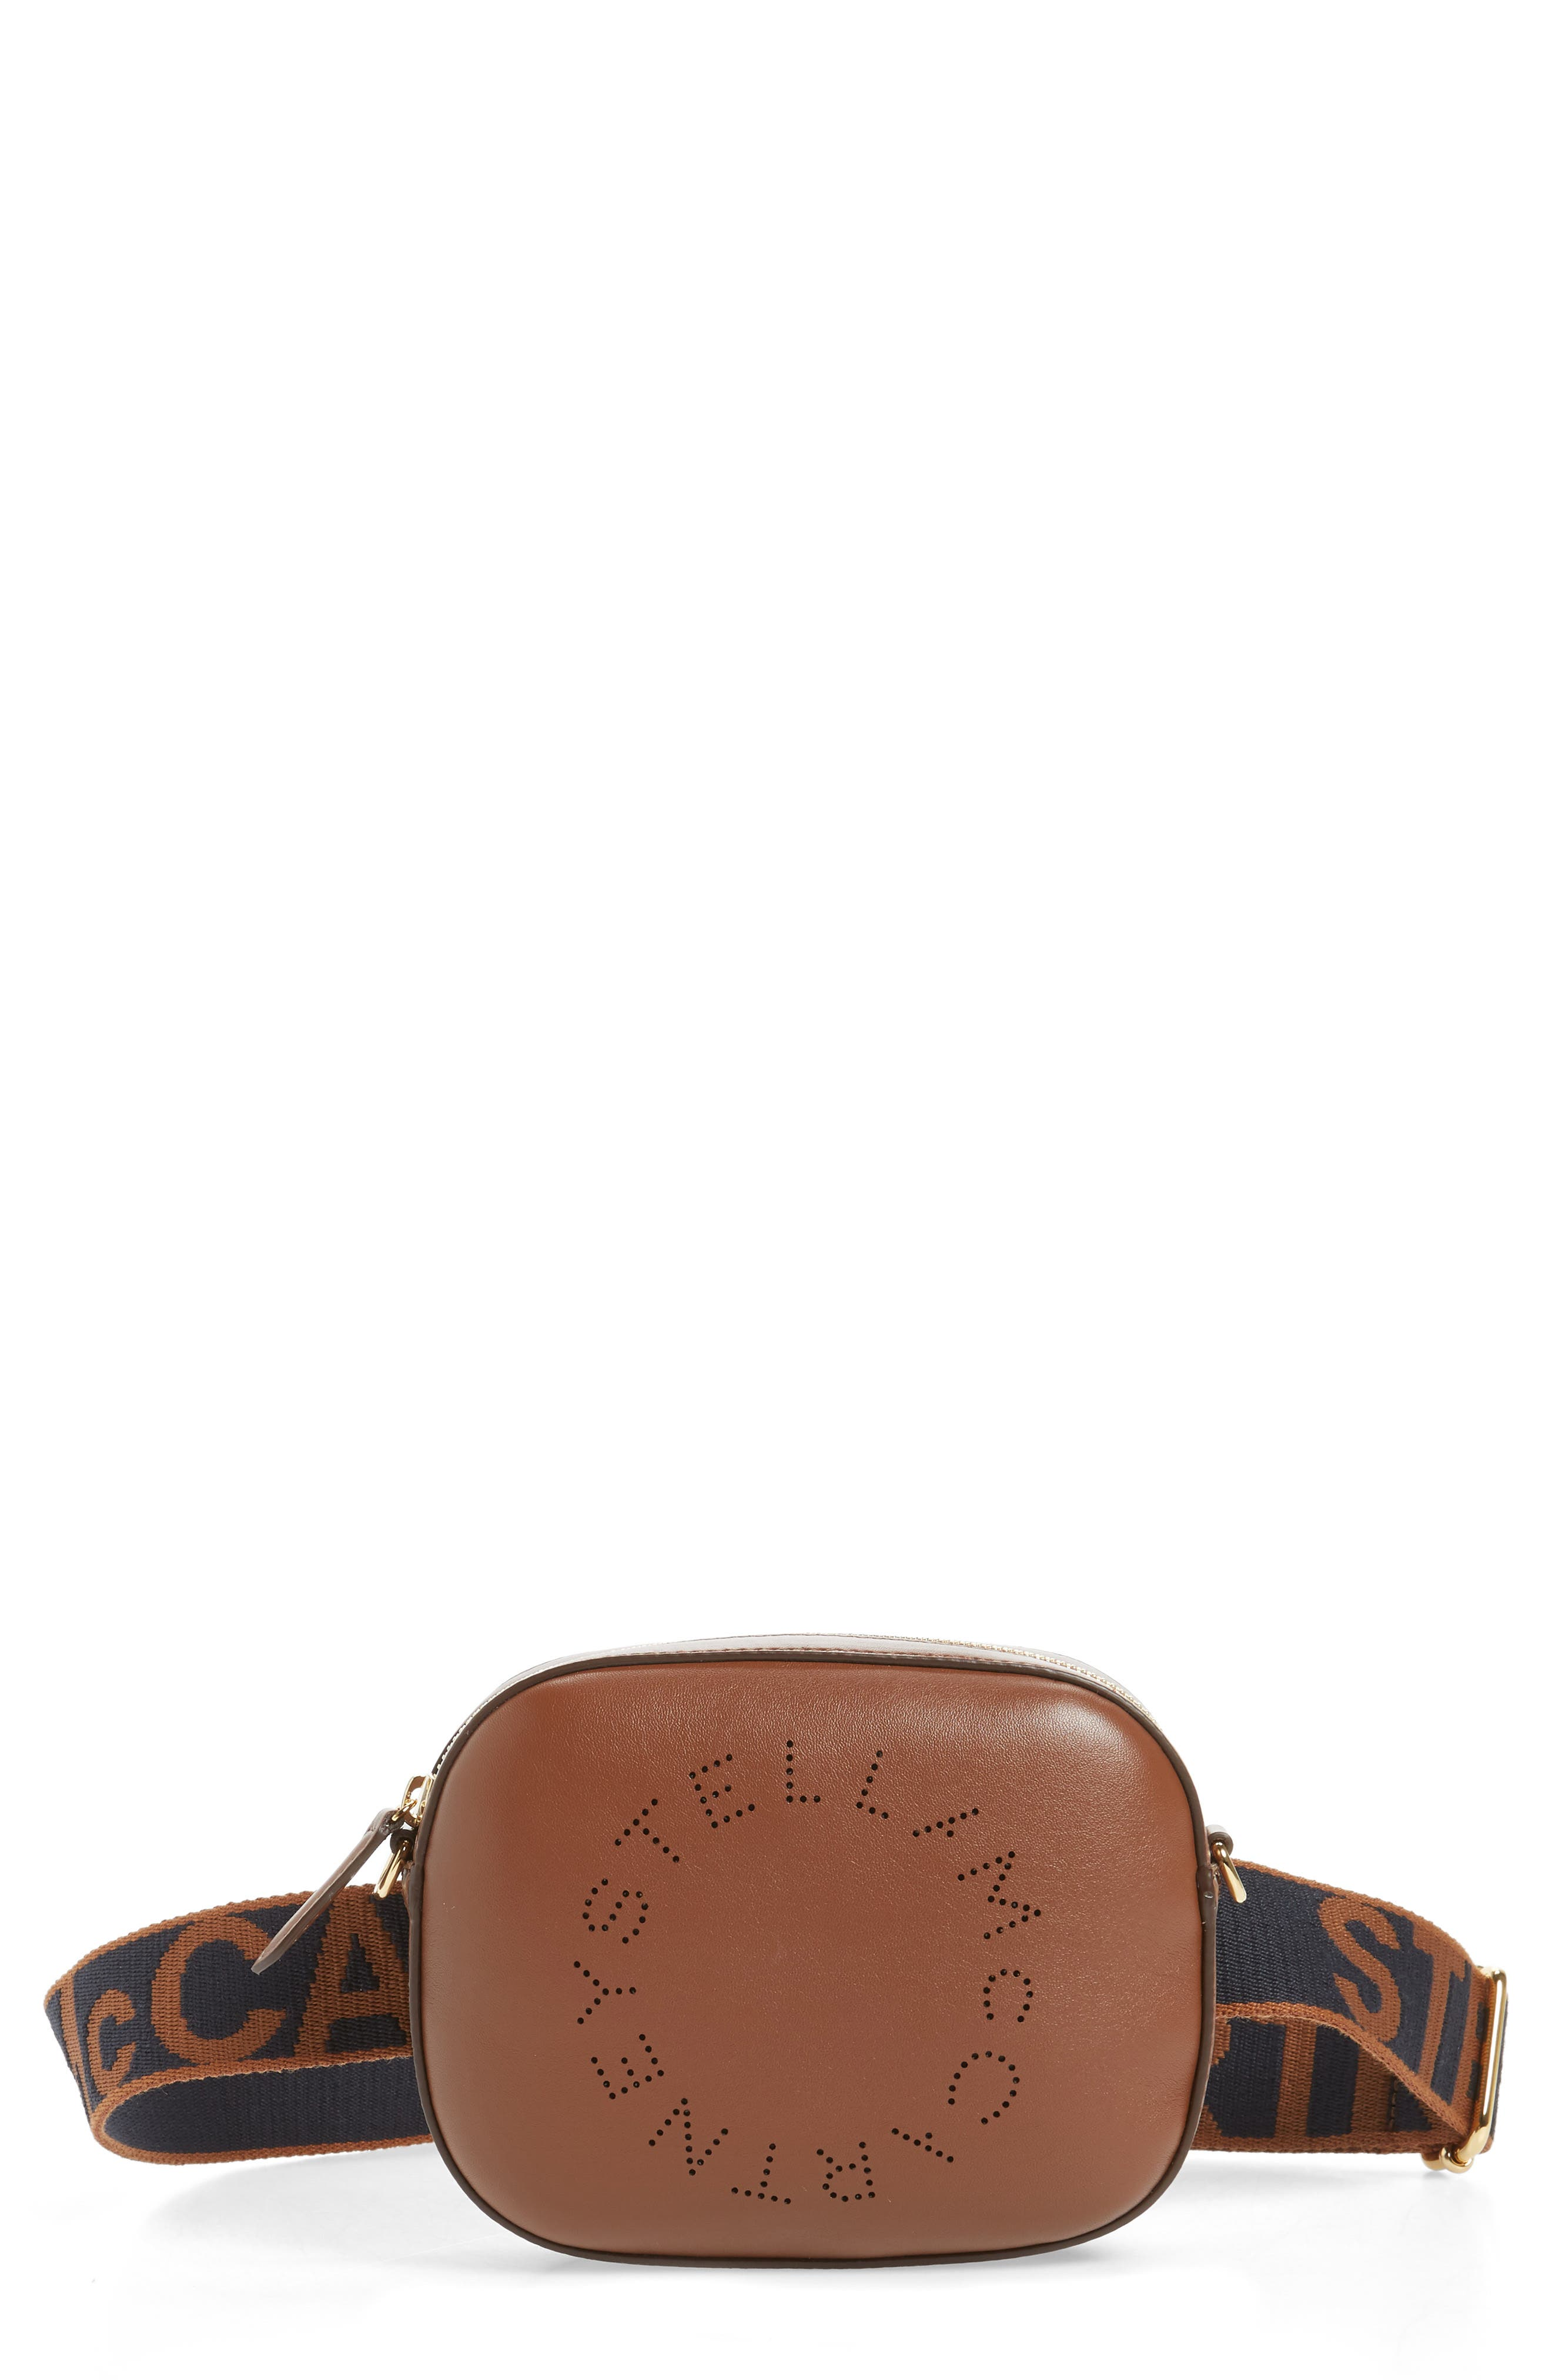 Stella Mccartney Perforated Logo Convertible Faux Leather Belt Bag - Brown